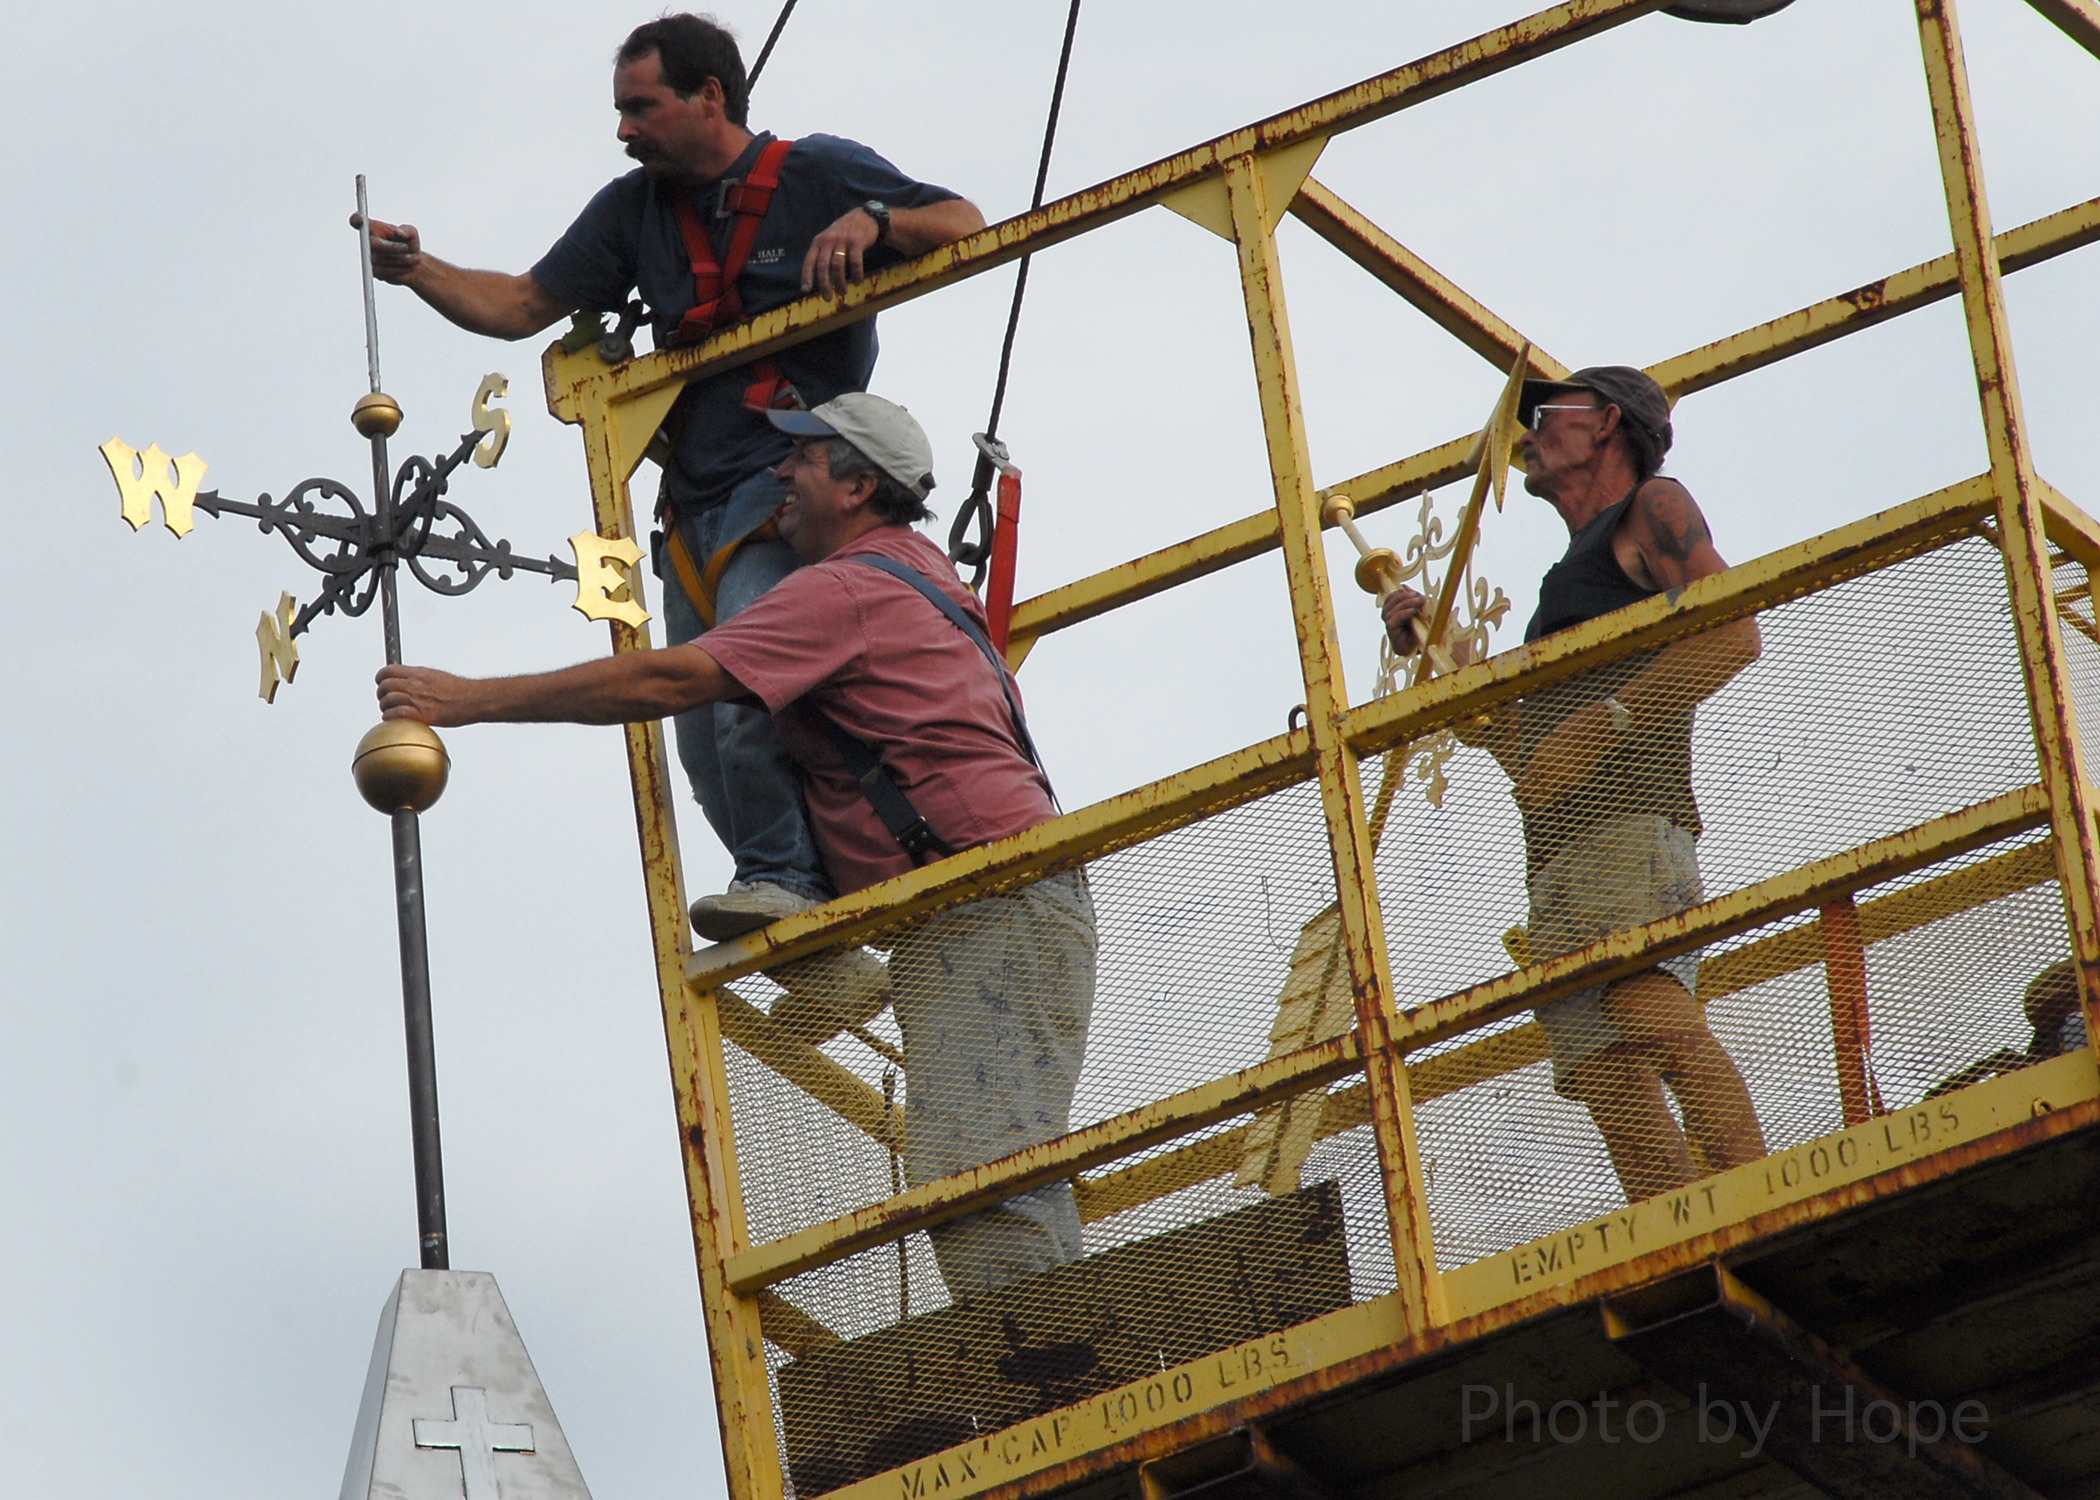 Attaching the weather vane